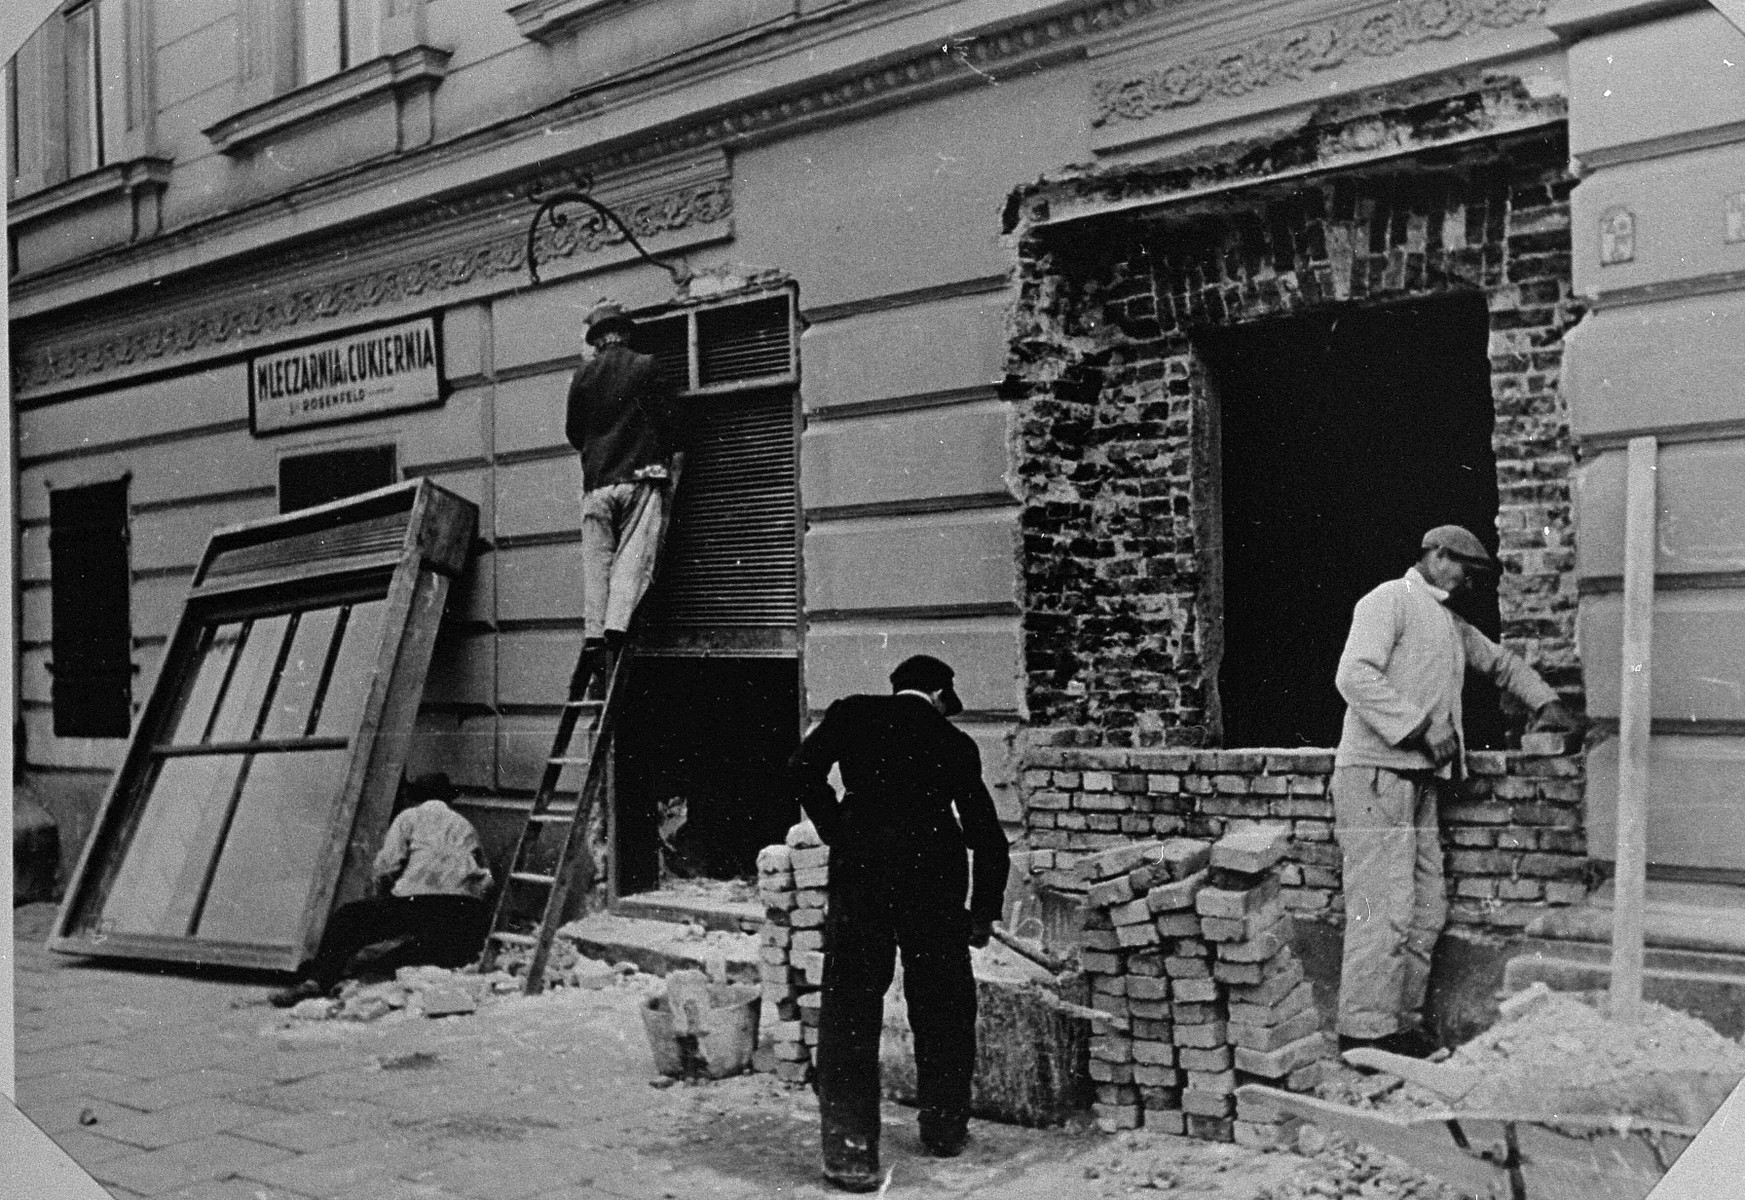 Polish laborers seal off the doors and windows of buildings on the outer periphery of the Krakow ghetto.